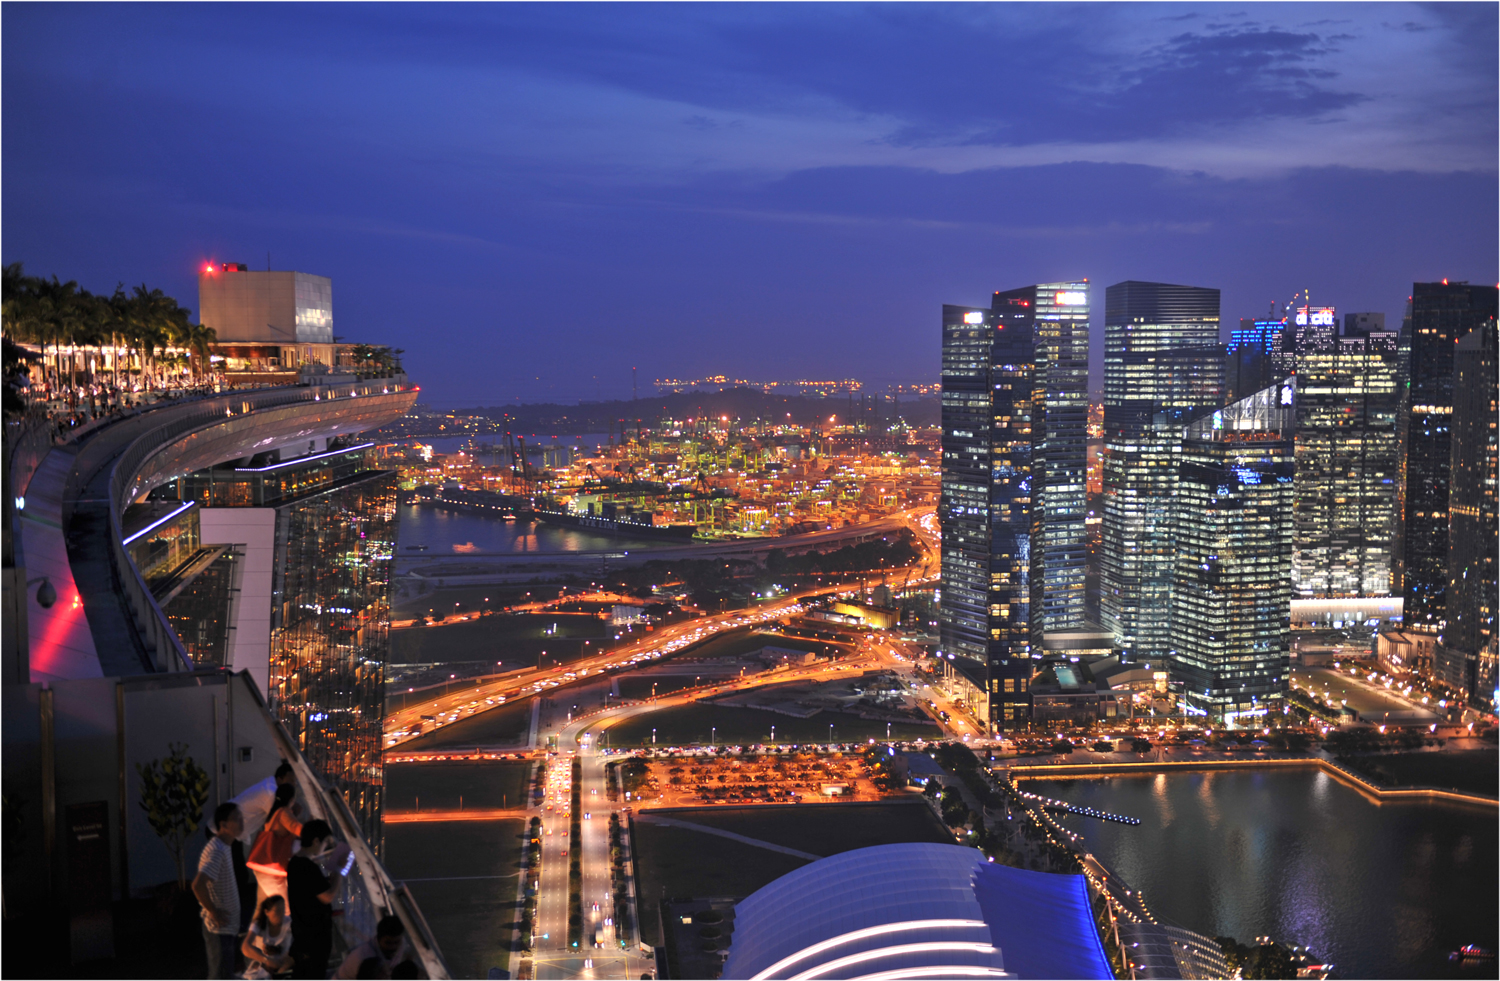 Singapore City by night (view from the Skypark)